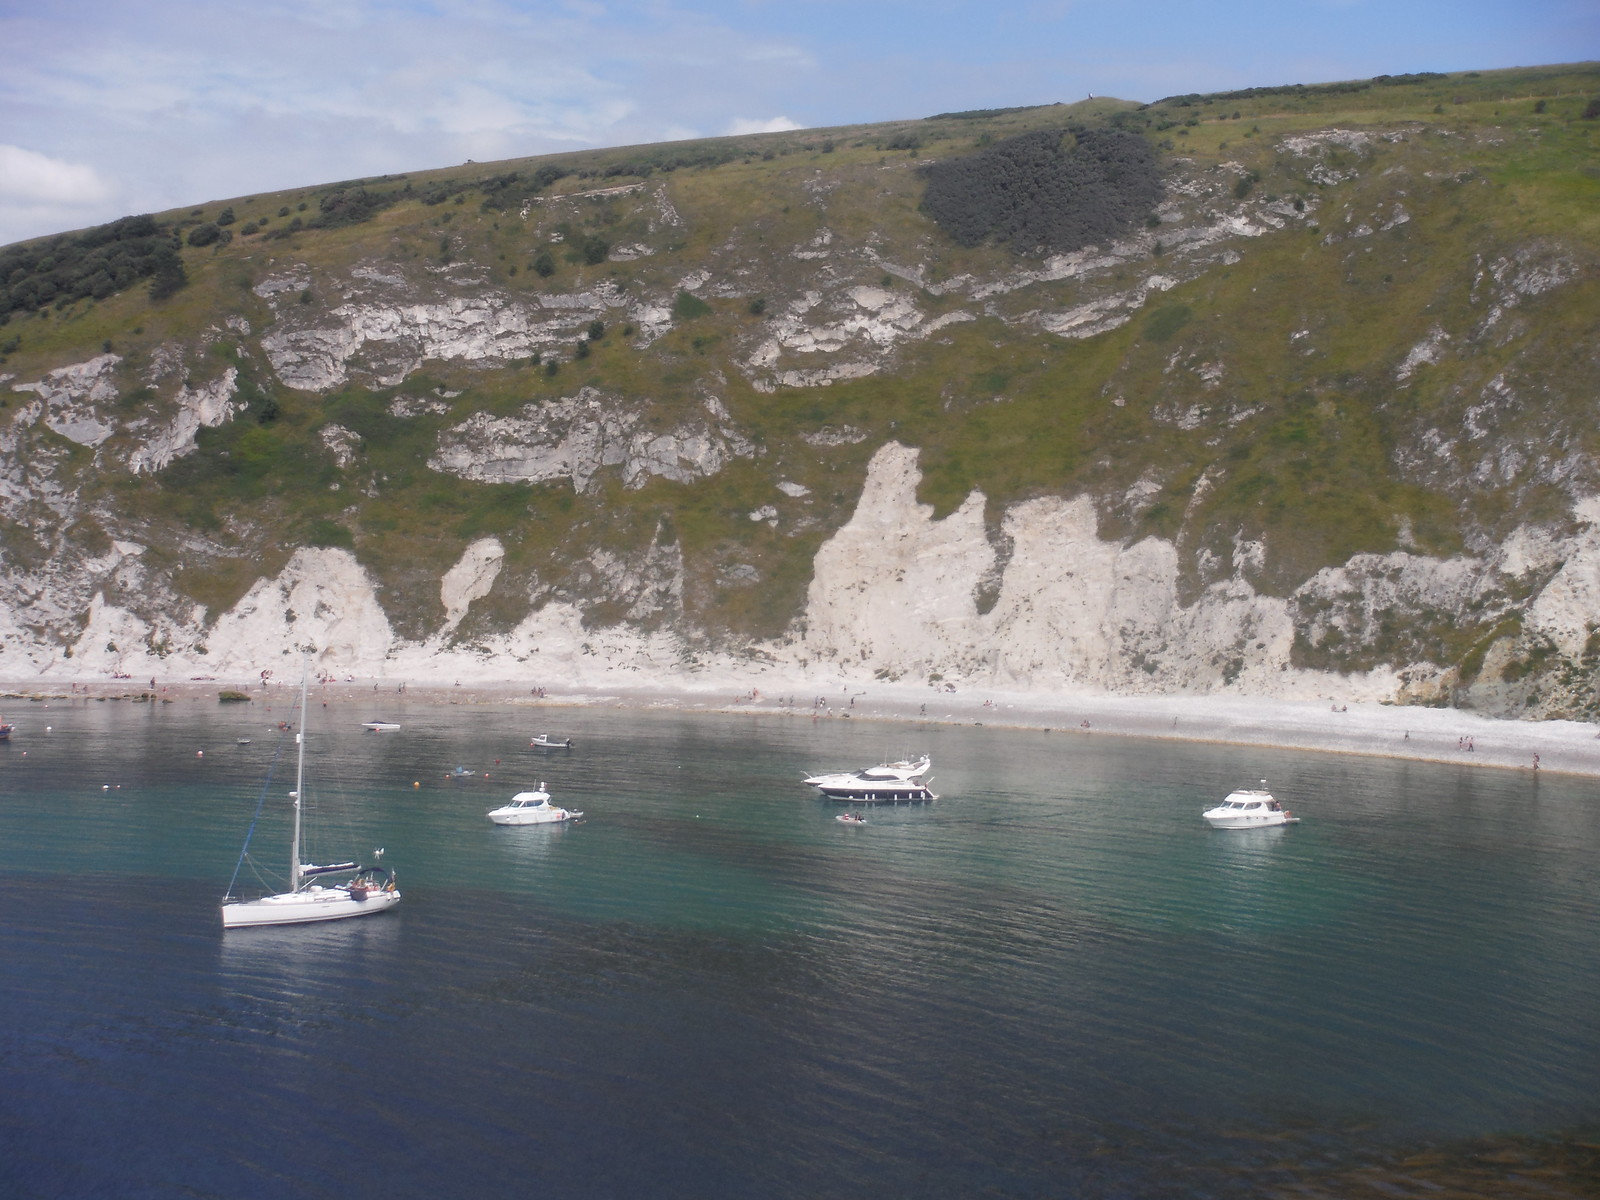 Lulworth Cove SWC Walk 54 - Lulworth Cove Circular (via Tyneham and Durdle Door)